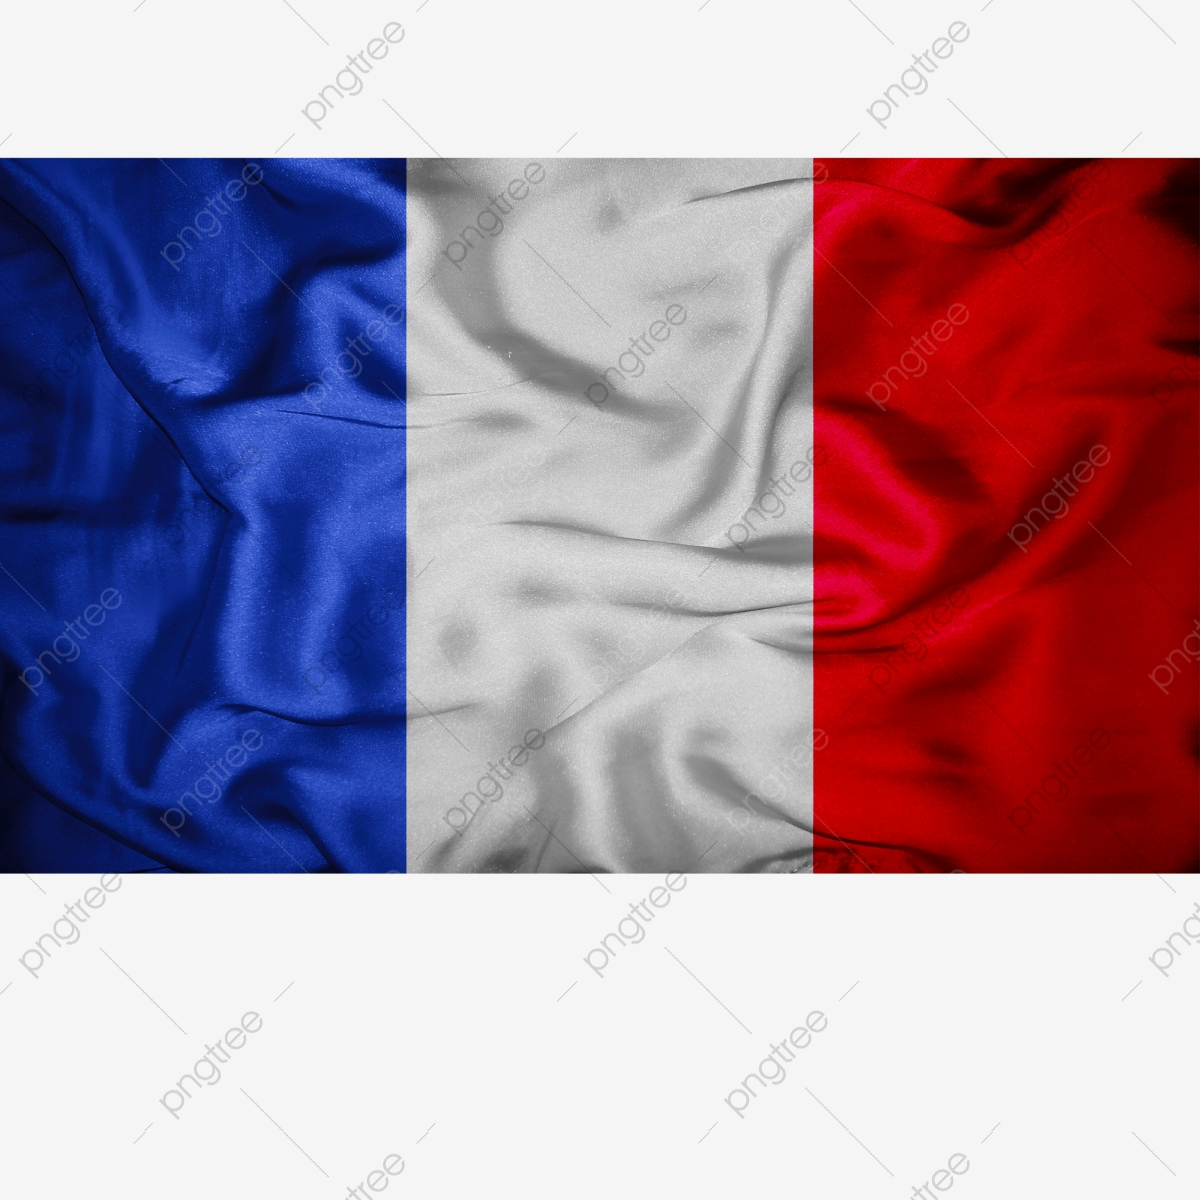 Kid Holding French Flag Stock Illustrations – 10 Kid Holding French Flag  Stock Illustrations, Vectors & Clipart - Dreamstime